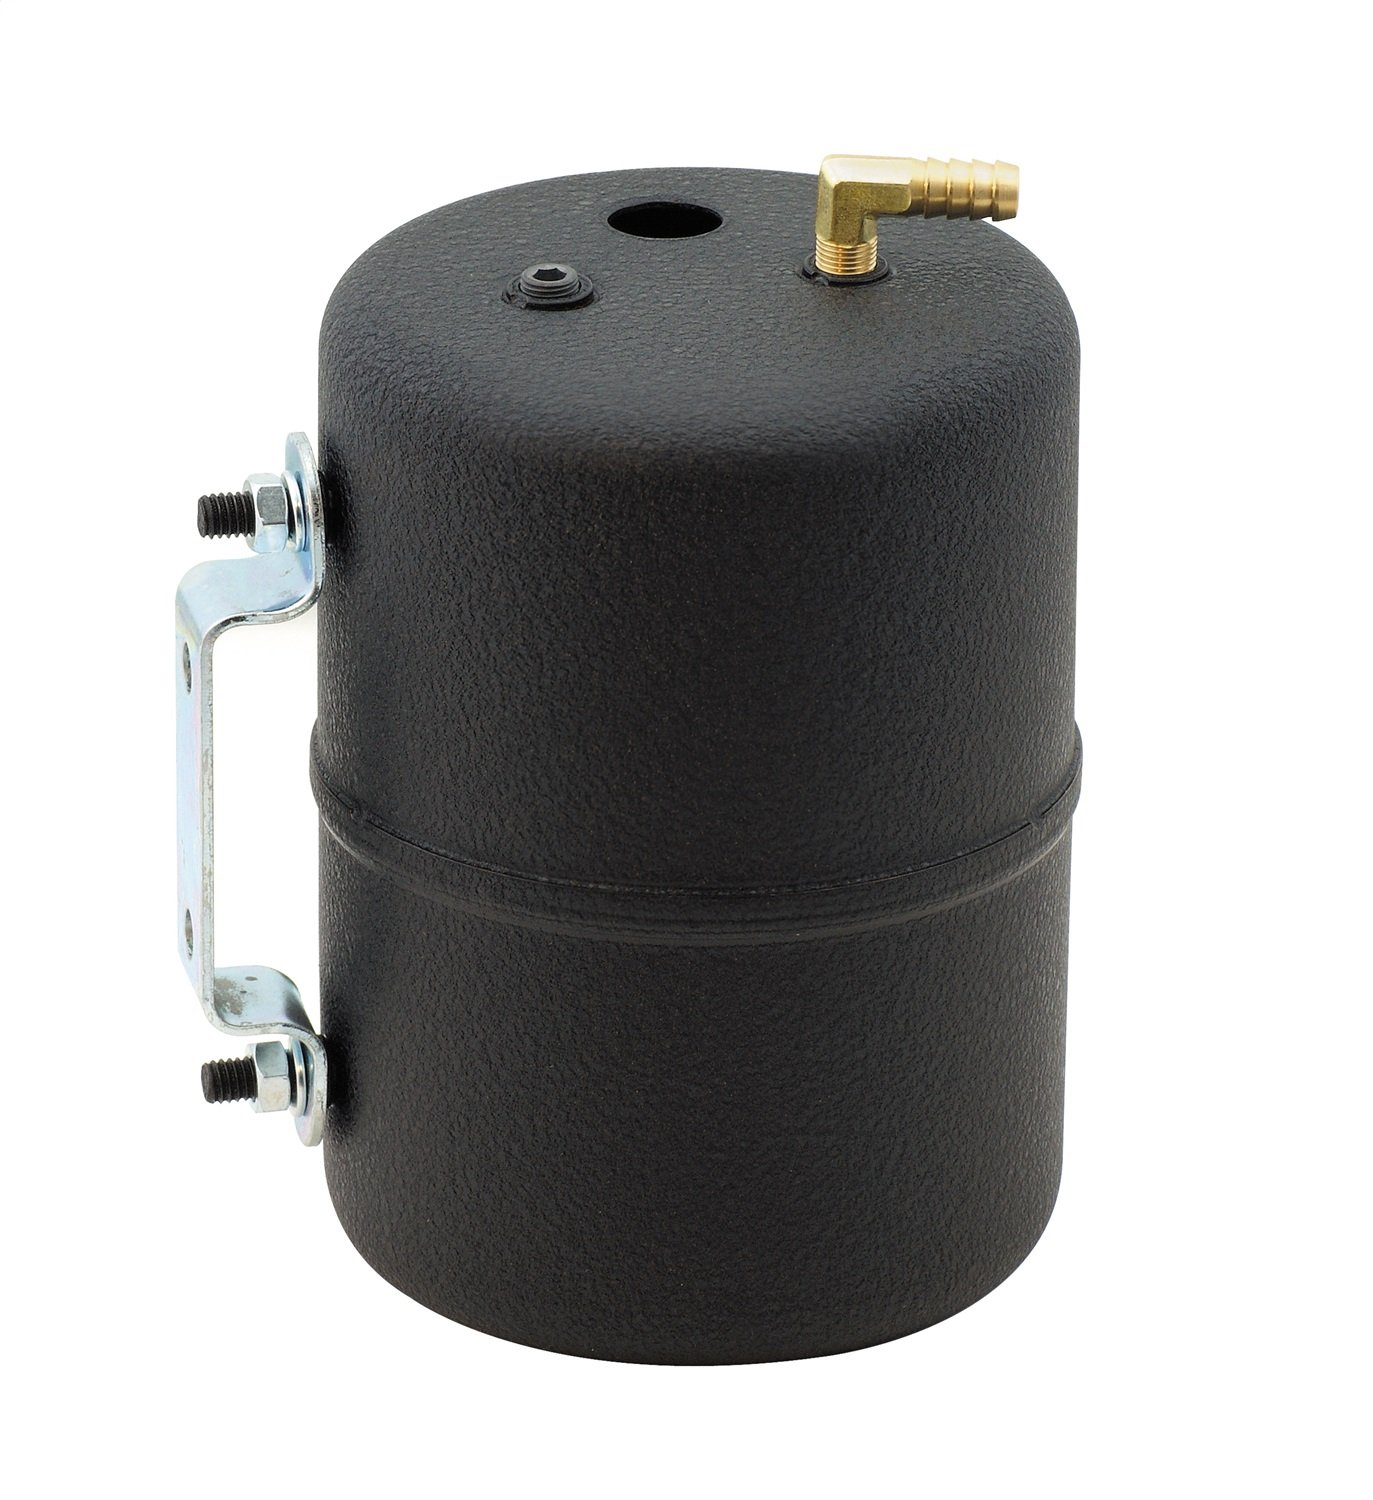 Gasket 3701 Black Painted Vacuum Canister with fittings Mr